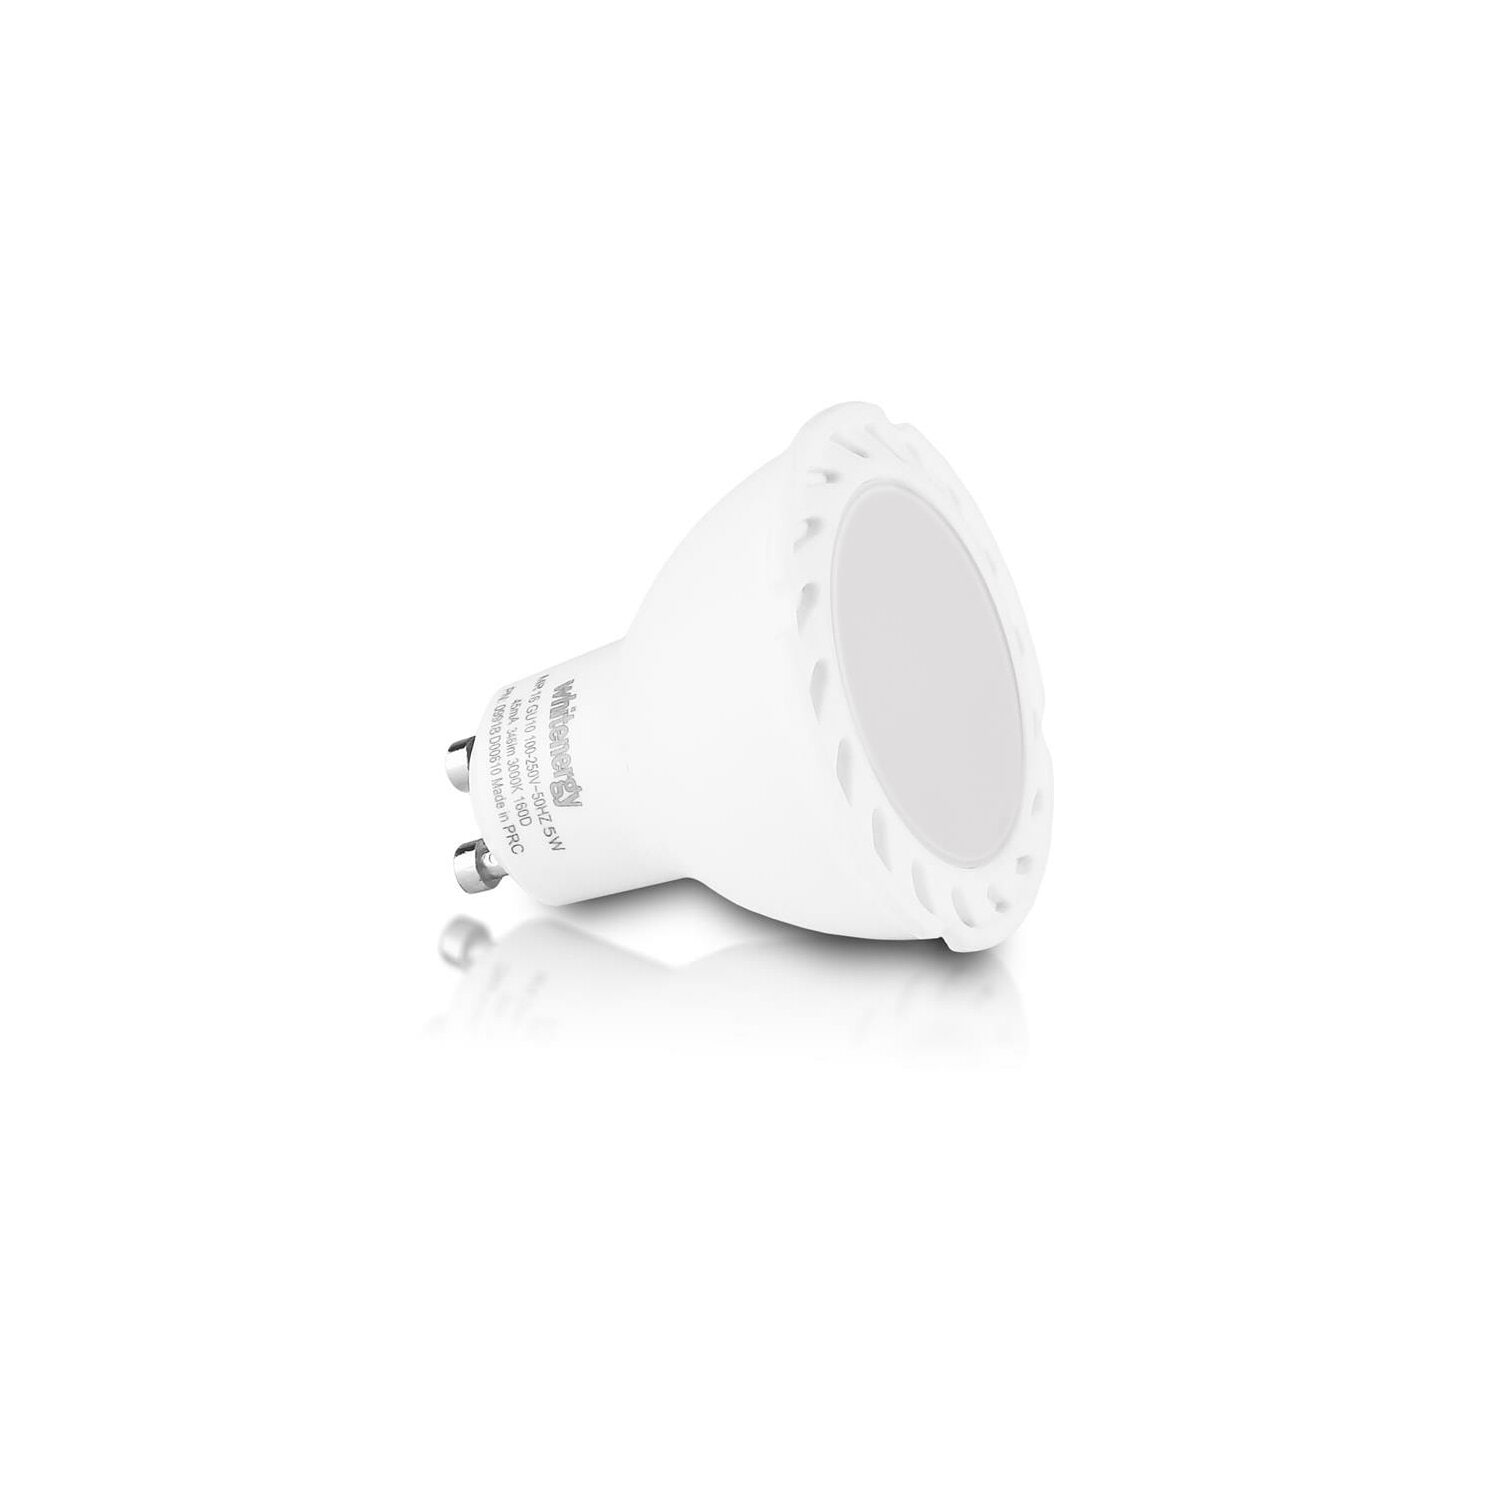 Żarówka LED WHITENERGY 9918 GU10 MR16 5W